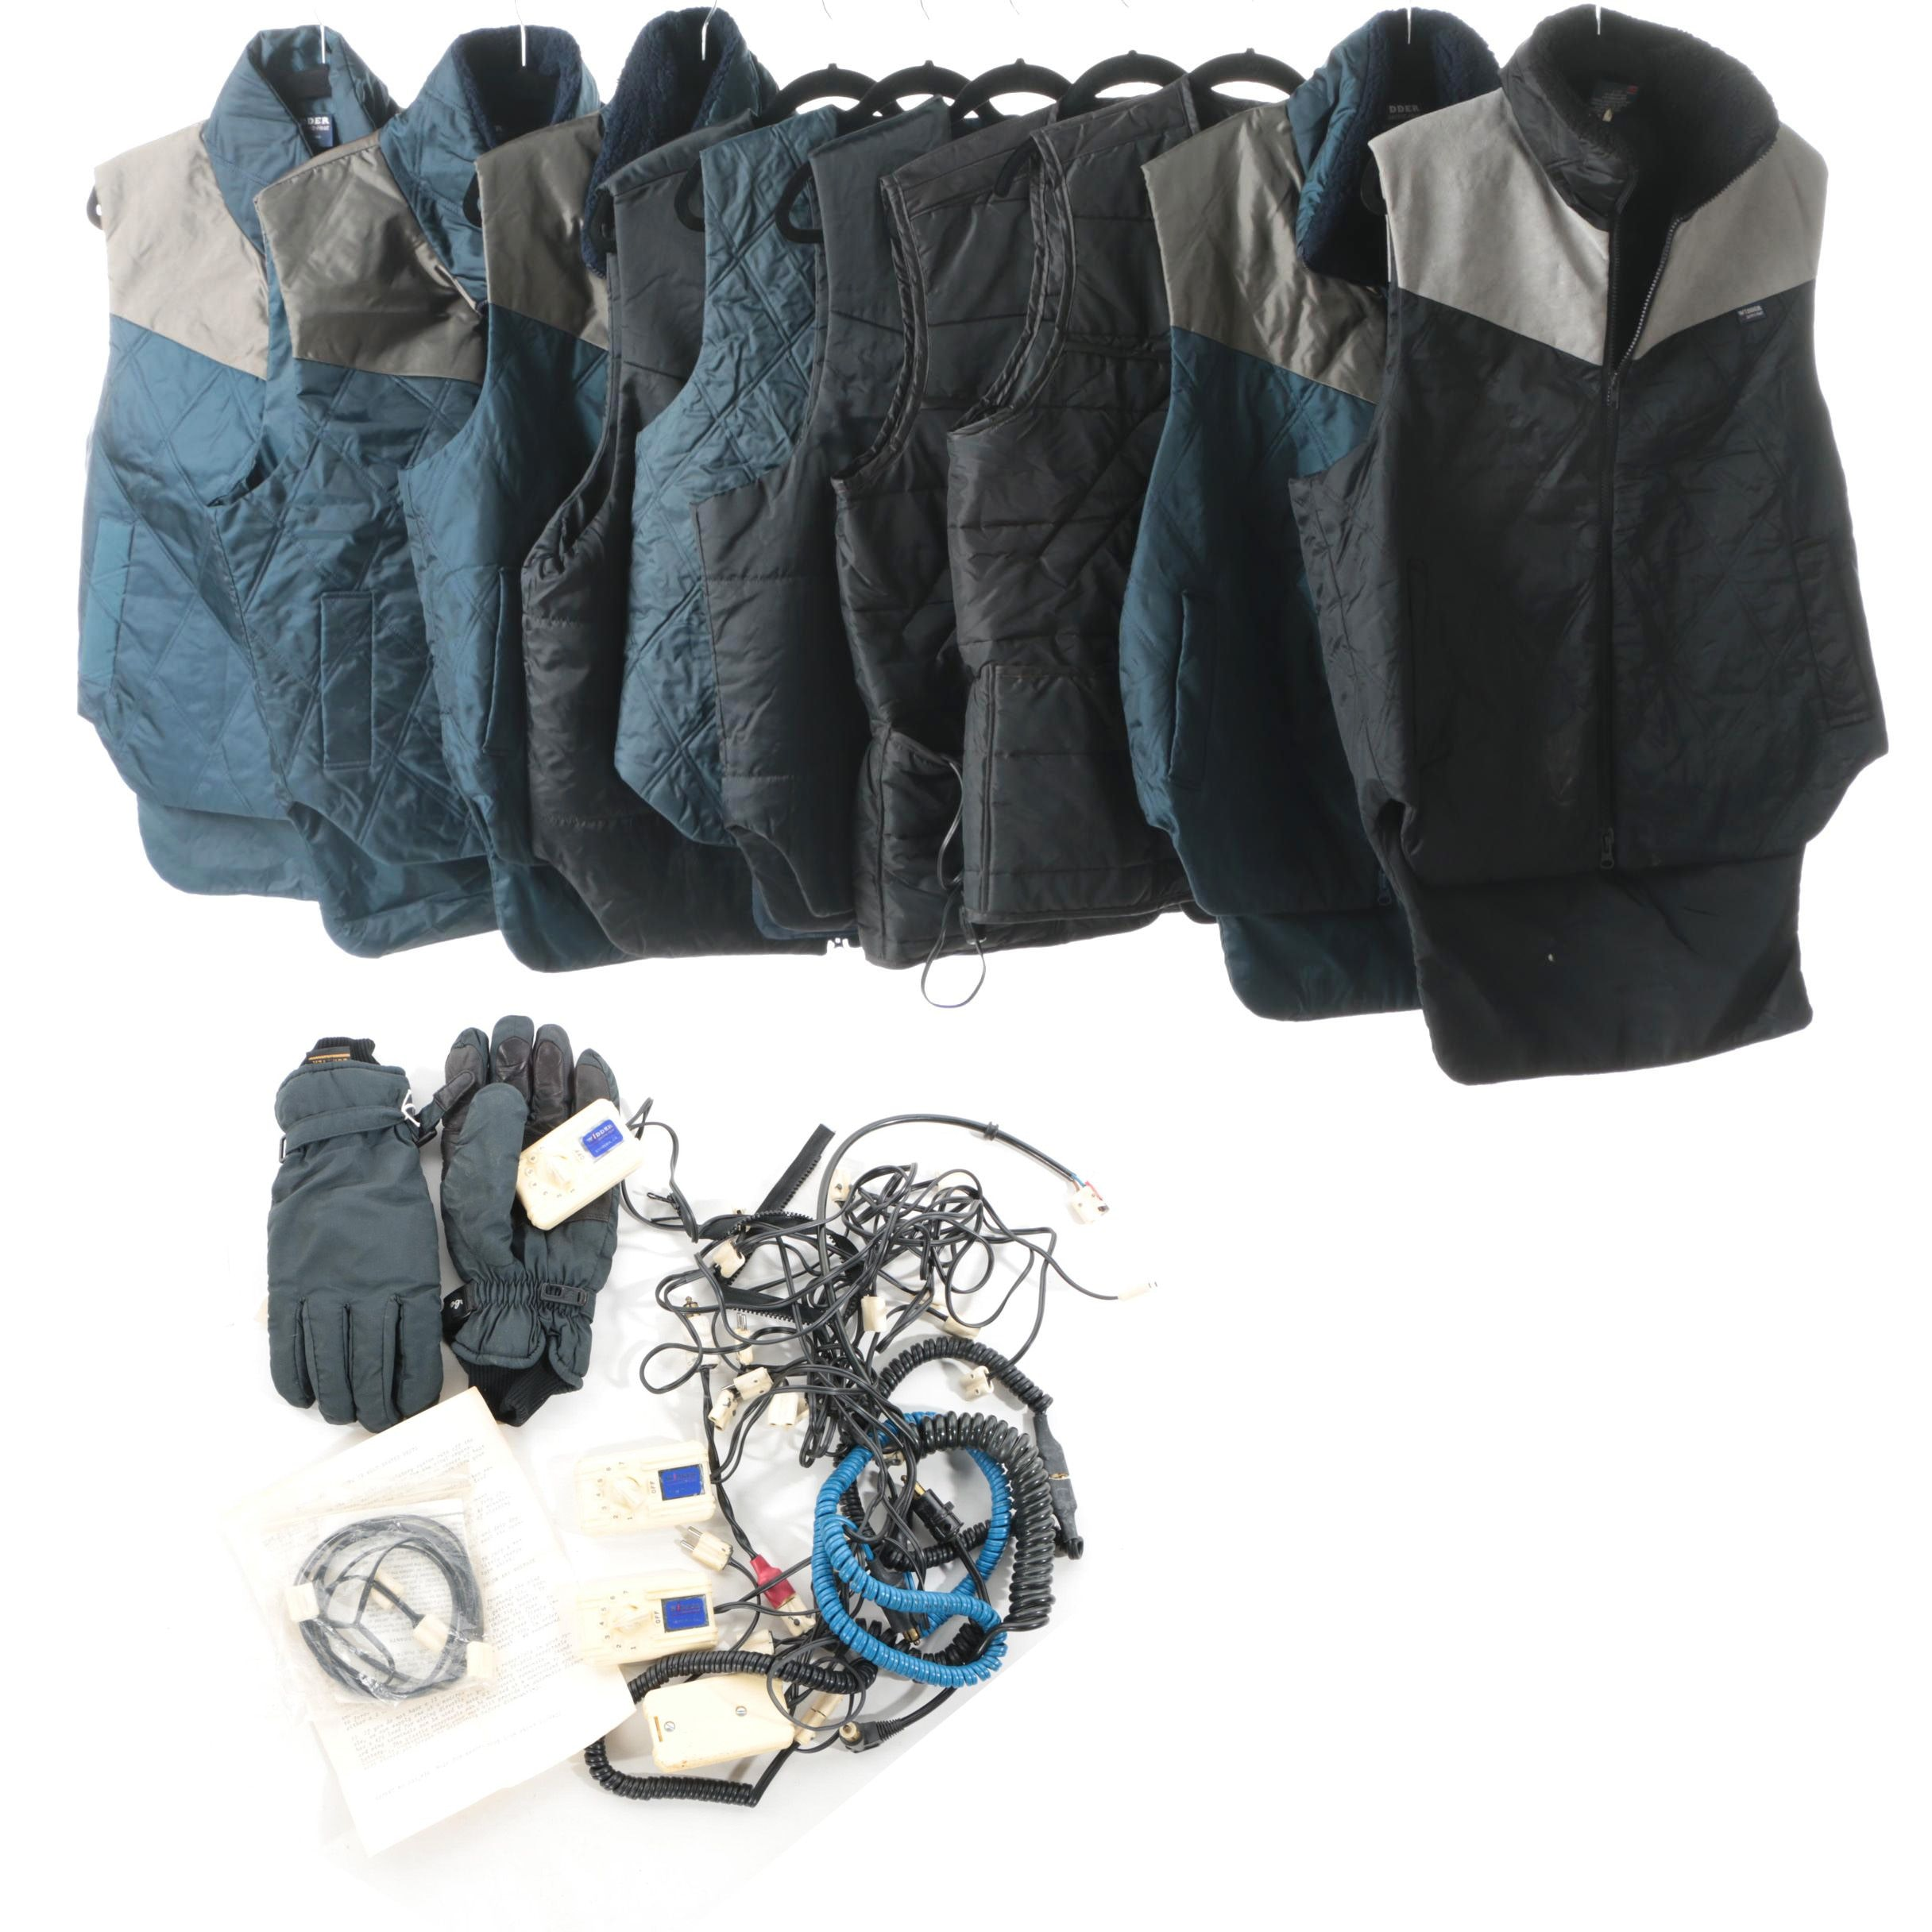 Circa 1990s Men's Griff's, Widder Heated Vests, Gore-Tex Gloves and Components